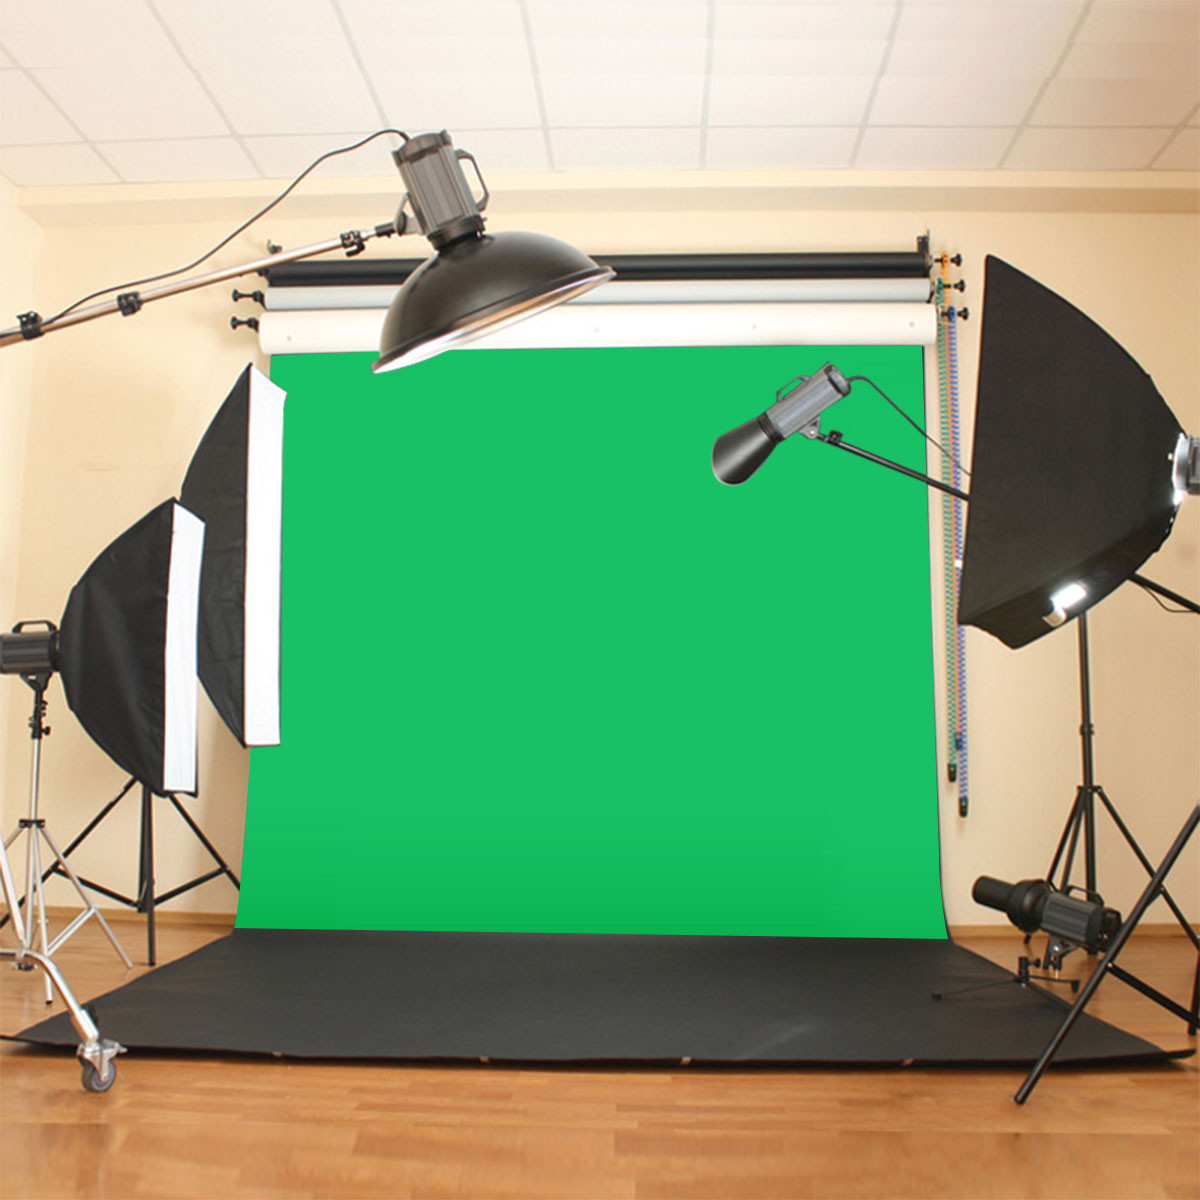 10X10ft/300x300CM Chromakey Green Screen Muslin Green Cloth Screen Backdrop Photo Photography Studio Background 10x10ft customize free shipping thin vinyl cloth photography backdrop scenery computer printing background for photo studio f179